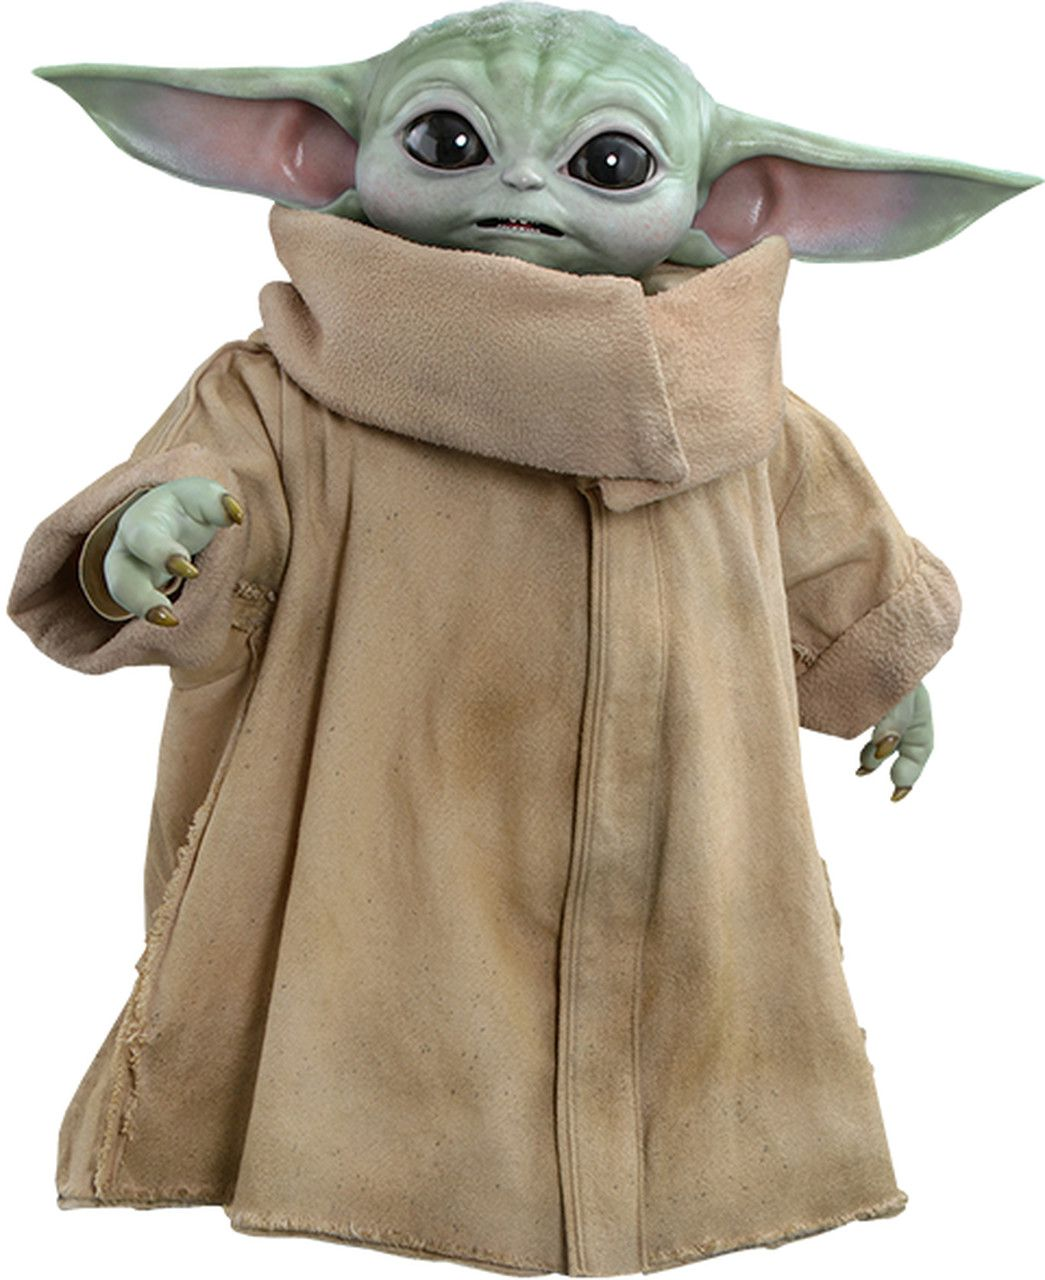 PRÉ VENDA: Action Figure Baby Yoda (The Child): The Mandalorian (Star Wars) Life-Size Masterpiece Series (LMS013) - Hot Toys